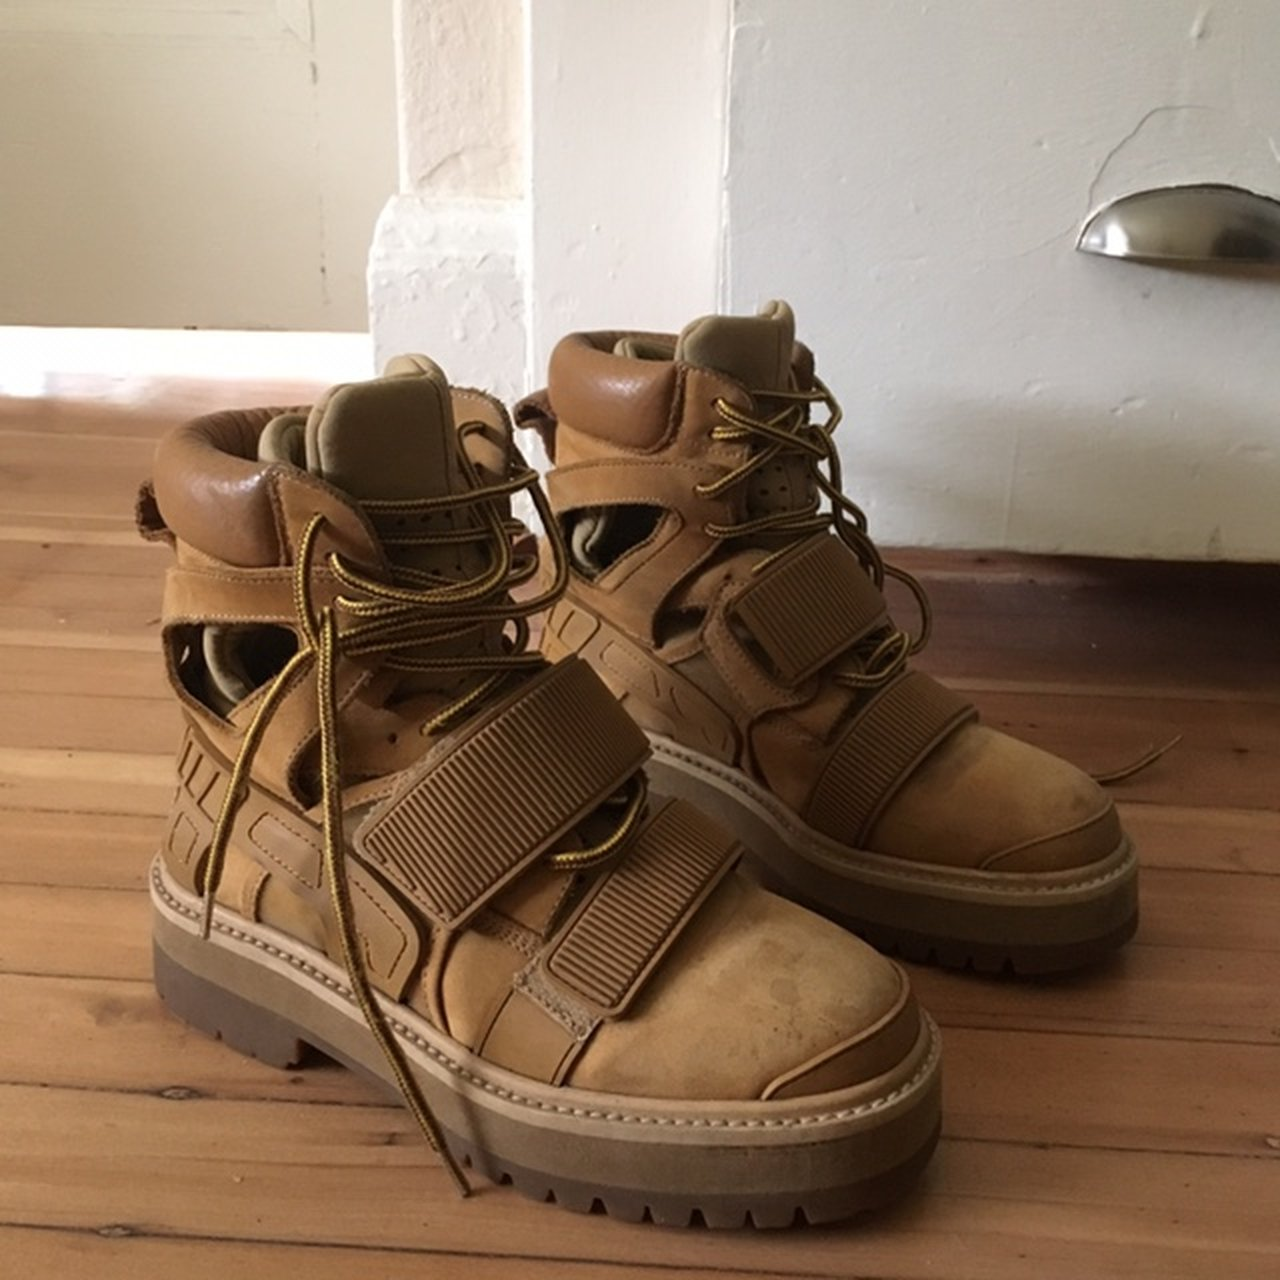 Hba X Forfex Avalanche Boots In Tan Color Size 37 These So Depop